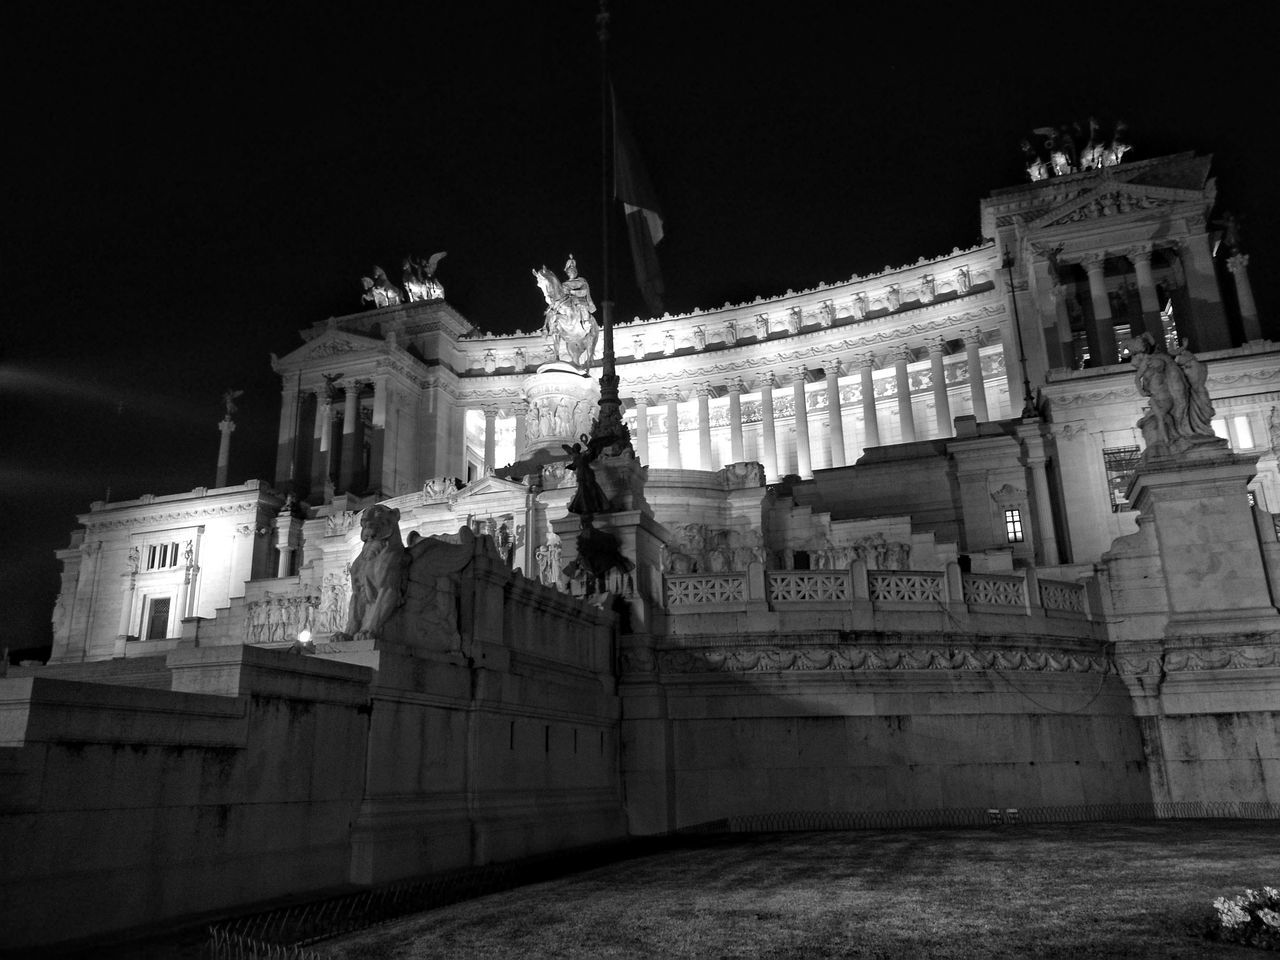 Architecture Building Exterior Built Structure Travel Destinations Travel City Low Angle View No People History Outdoors Night Rome, Italy Rome By Night Altare Della Patria Blackandwhite